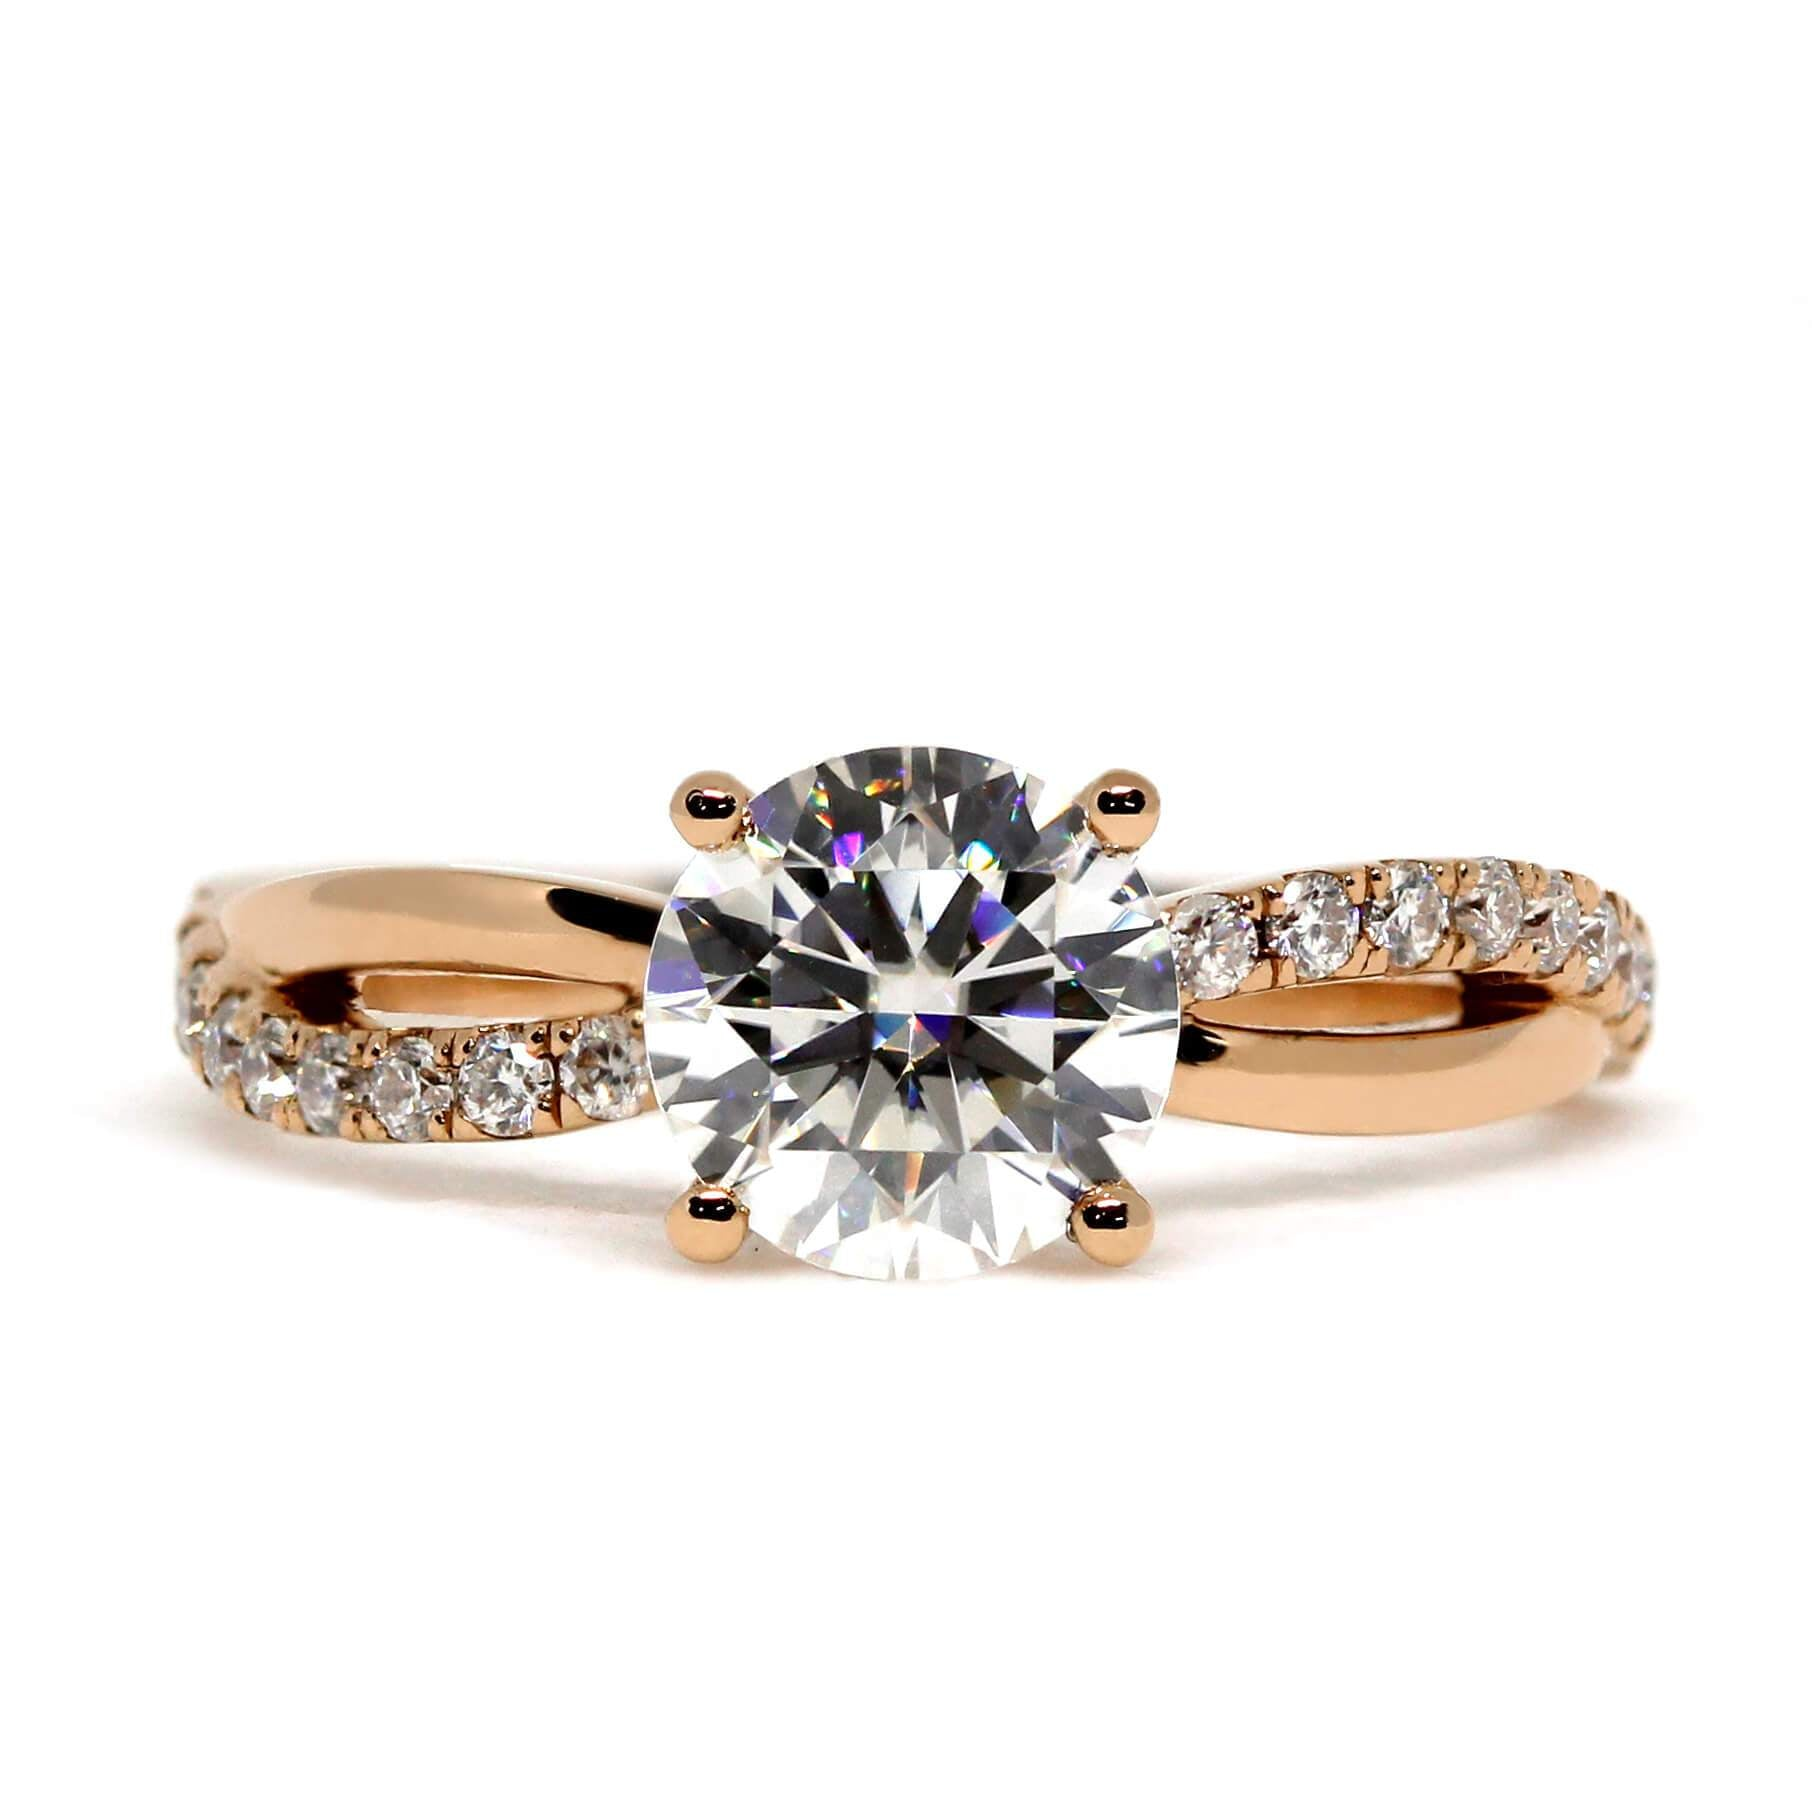 1 carat Round Moissanite Solitaire Accents 18K Rose Gold Ring